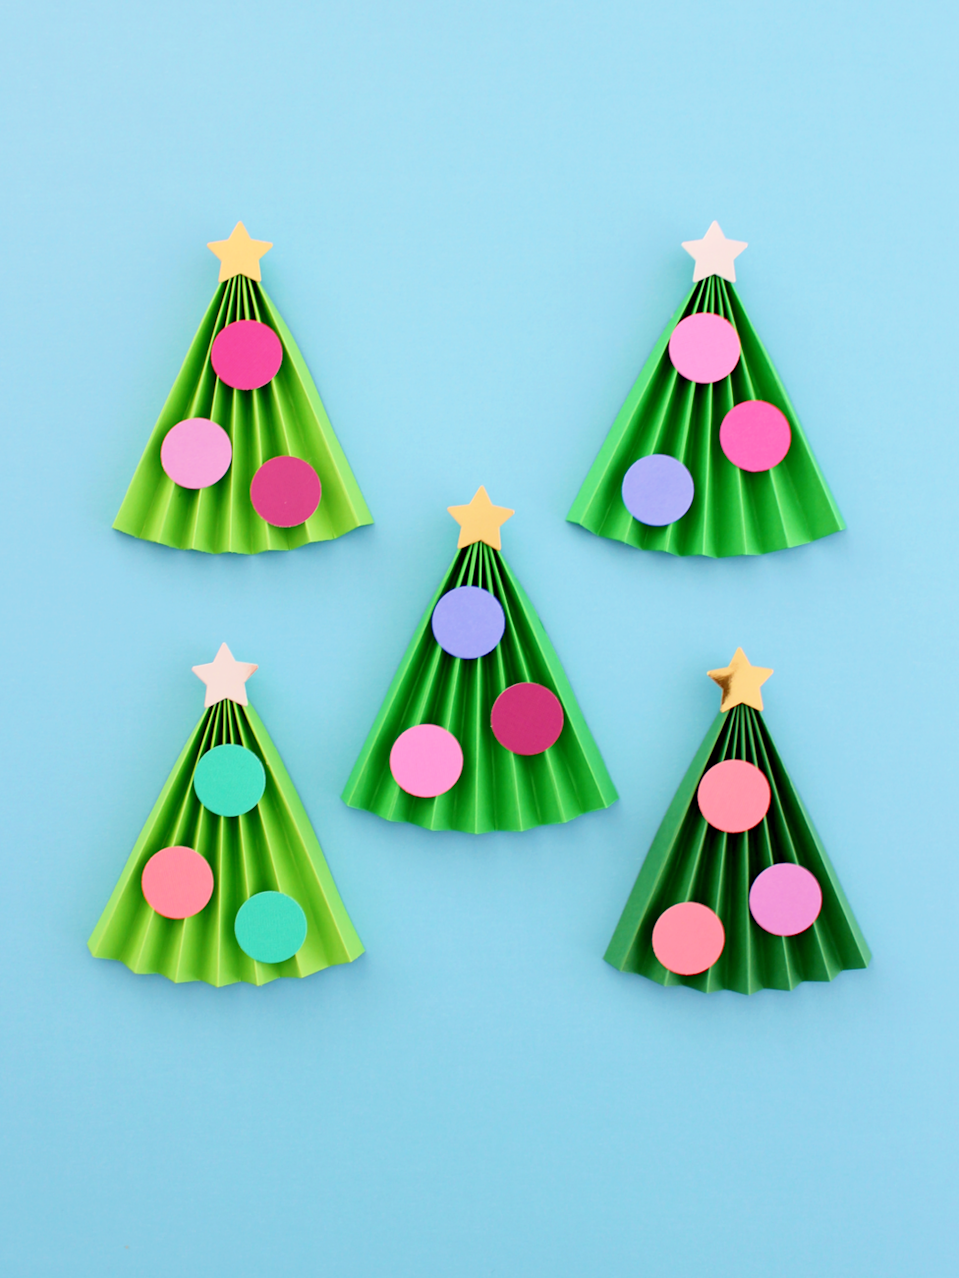 """<p>All kids need is five minutes to make this super-simple Christmas tree craft. Fold green craft paper accordion style, and then deck it with colorful paper cutouts as ornaments — and don't forget the star on top.</p><p><em><a href=""""https://www.whitehousecrafts.net/post/2019/11/24/5-minute-kids-accordion-christmas-tree-craft"""" rel=""""nofollow noopener"""" target=""""_blank"""" data-ylk=""""slk:Get the tutorial at White House Crafts"""" class=""""link rapid-noclick-resp"""">Get the tutorial at White House Crafts </a></em></p>"""